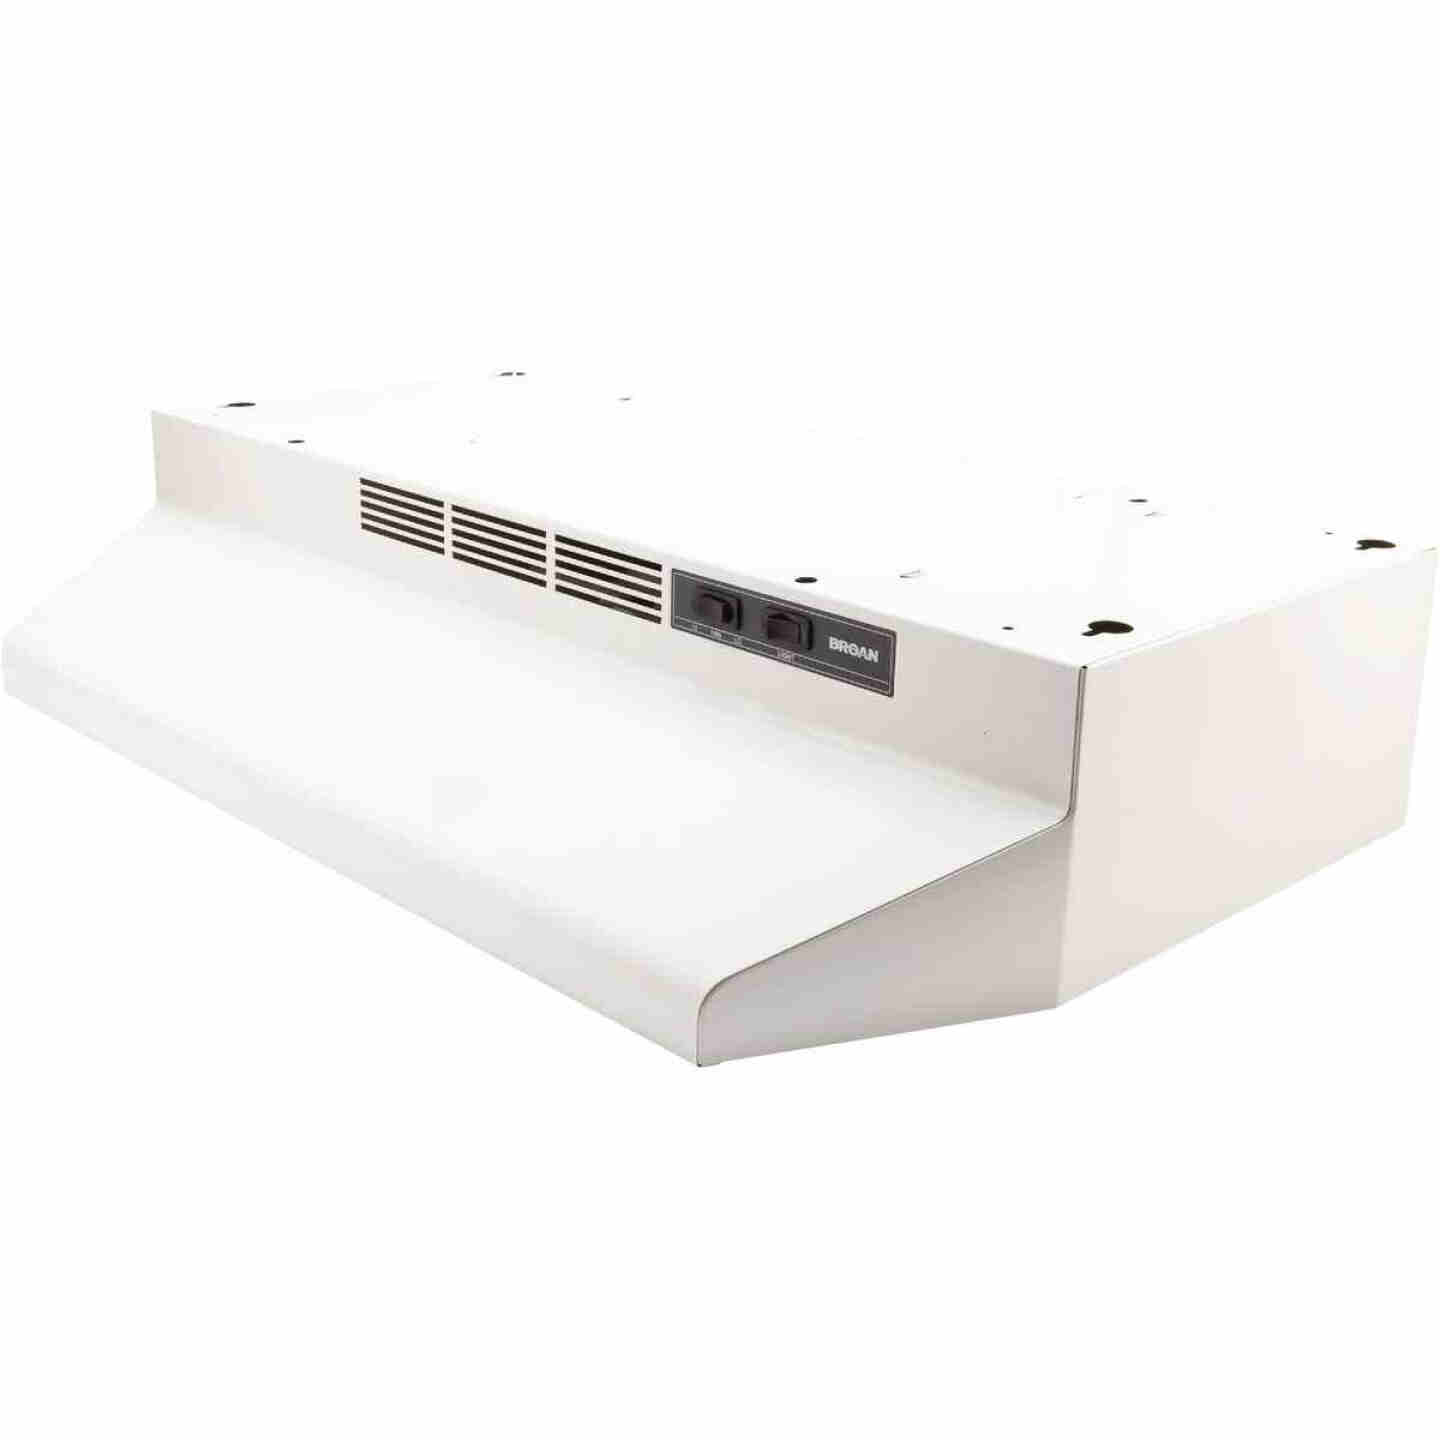 Broan-Nutone 41000 Series 30 In. Non-Ducted White Range Hood Image 1